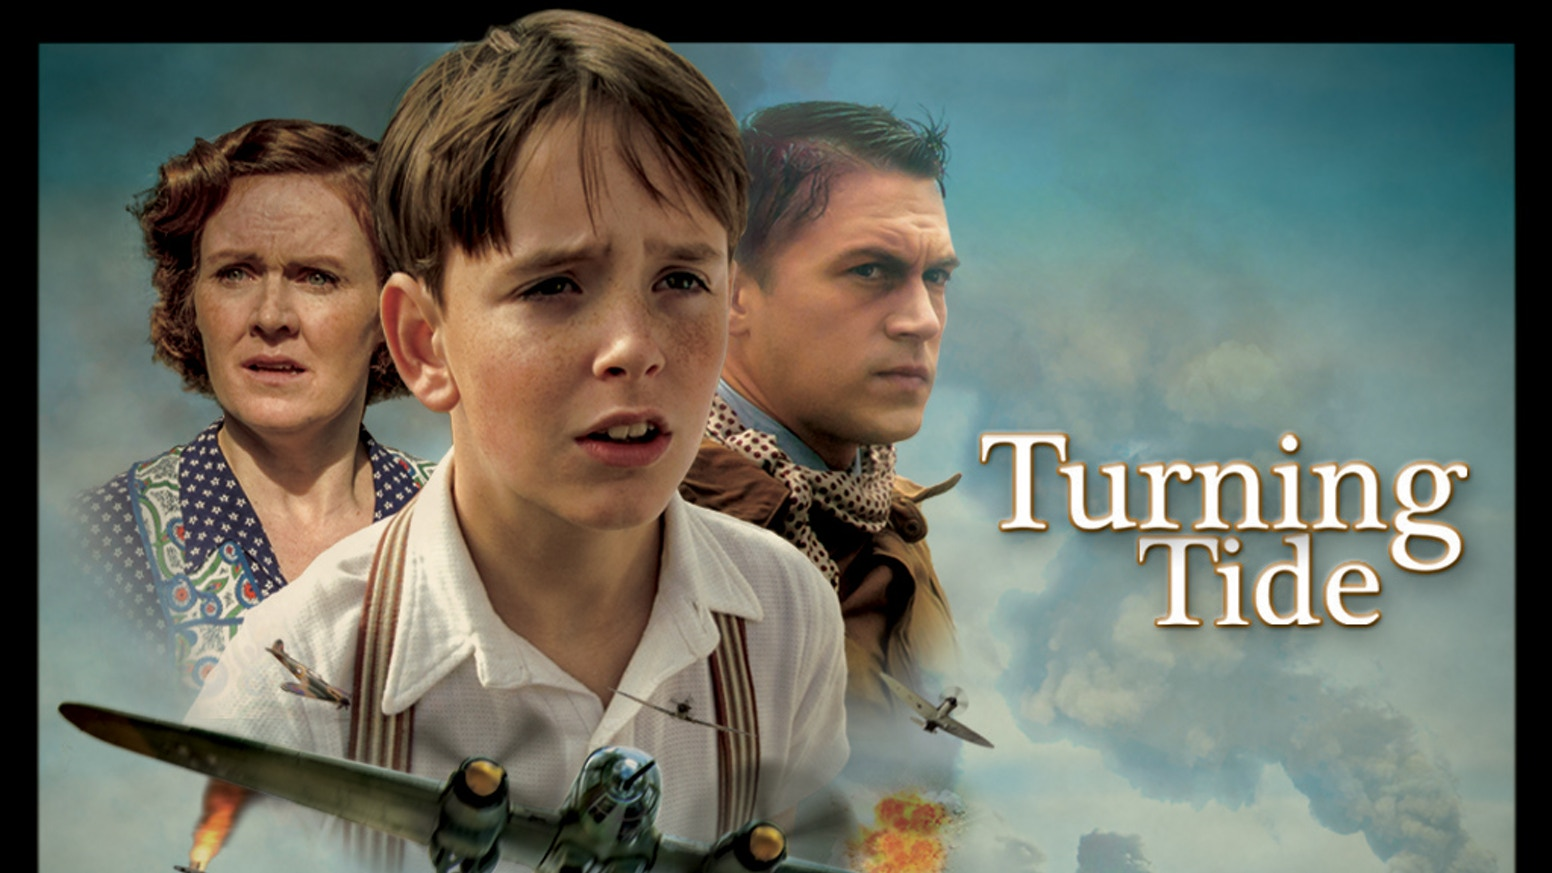 Turning Tide follows the story of a young boy during WWII, as he discovers a mysterious bomber pilot washed up on the Scottish coast.